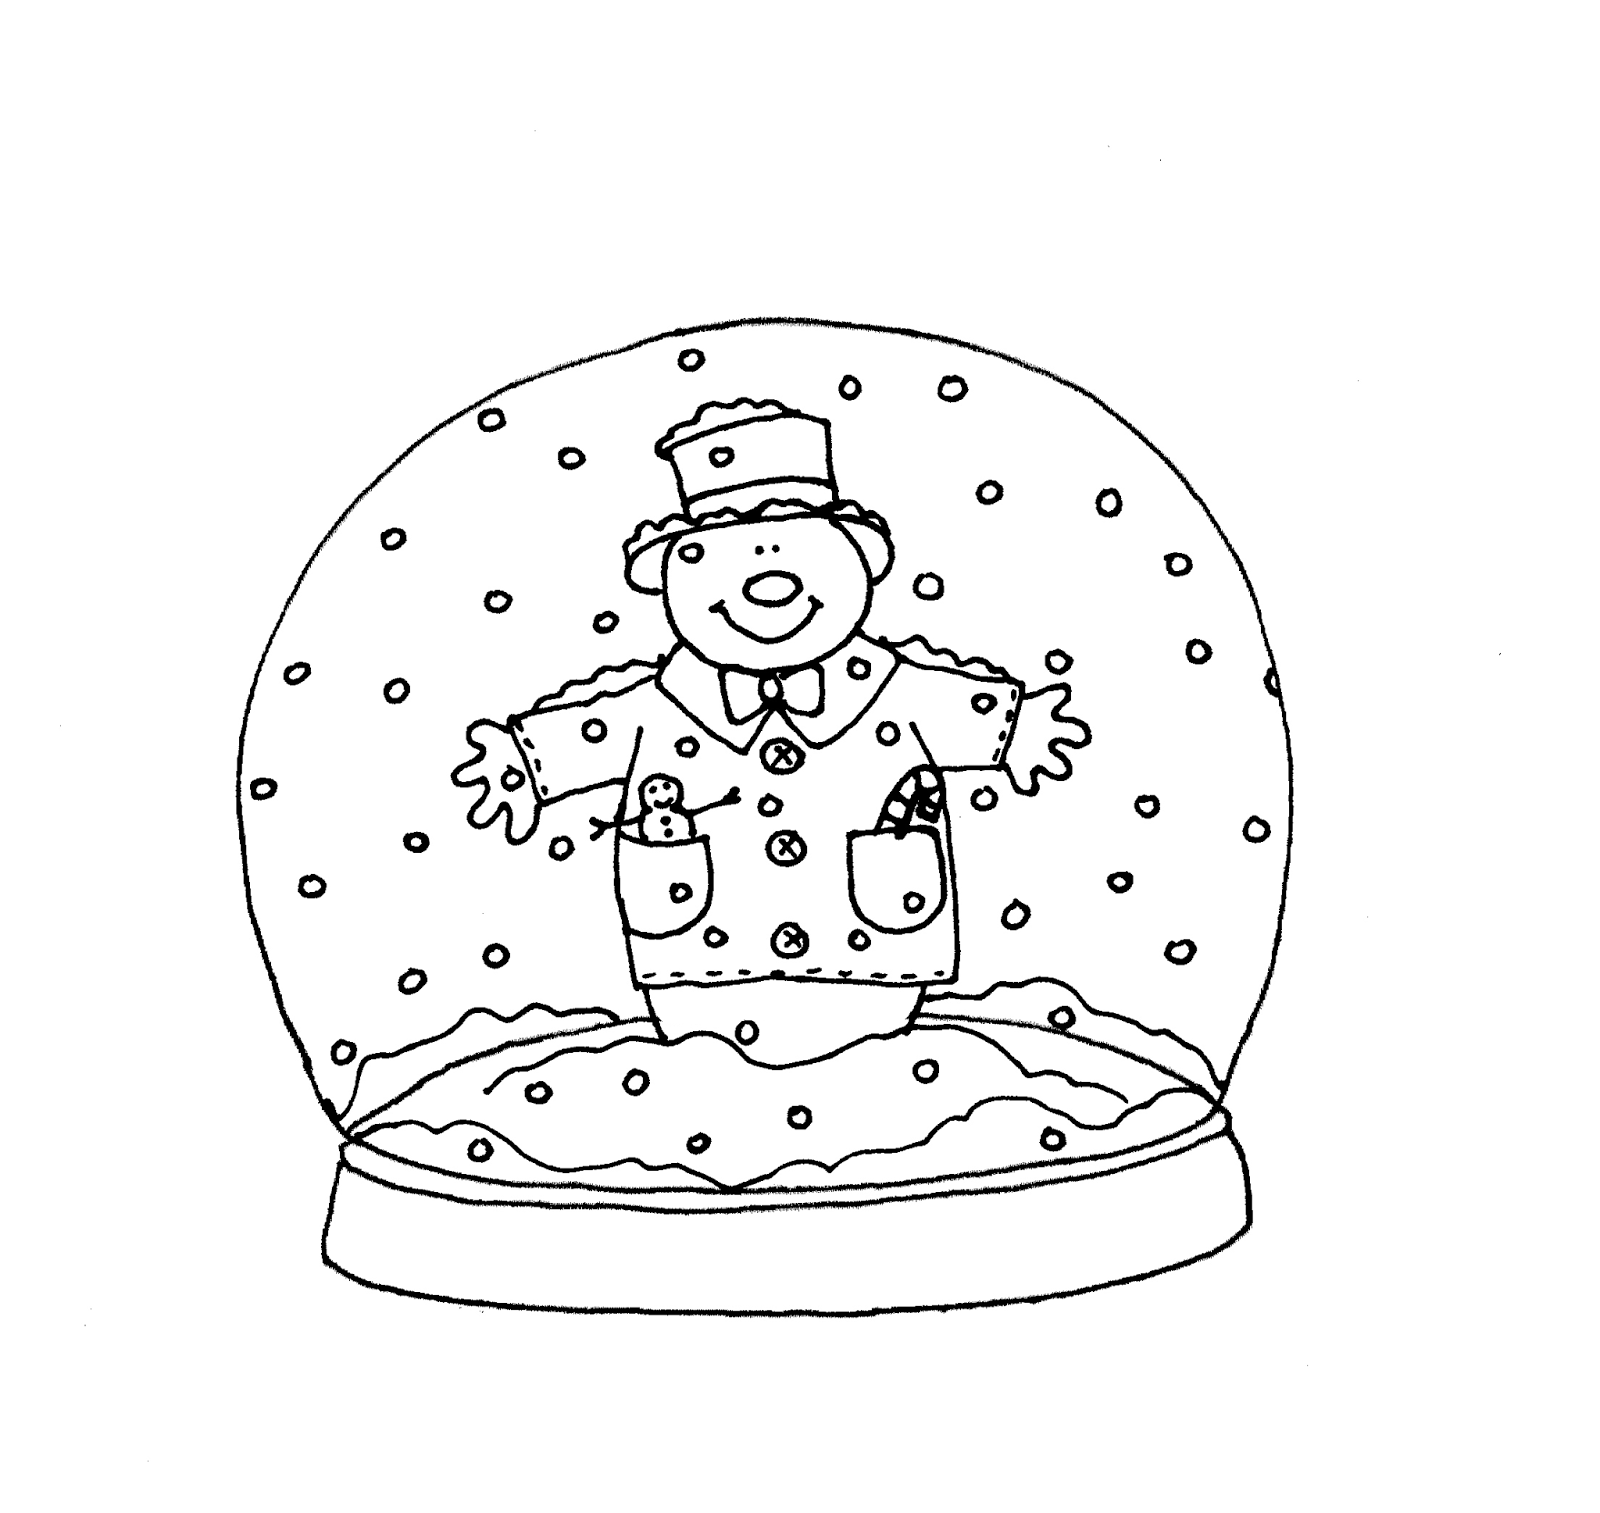 snow globe coloring page - free dearie dolls digi stamps snowglobe snowman